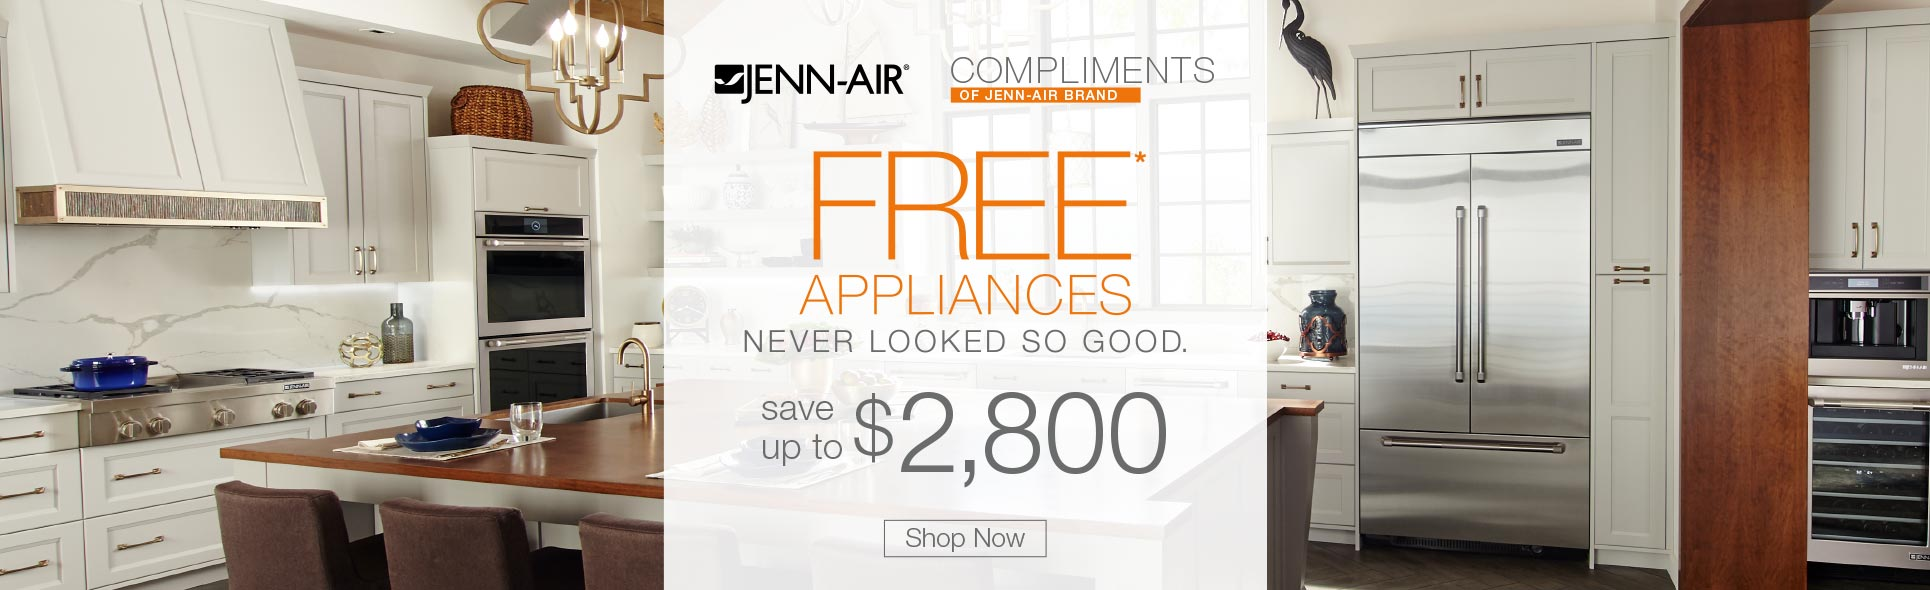 jennair rebate save up to $2800